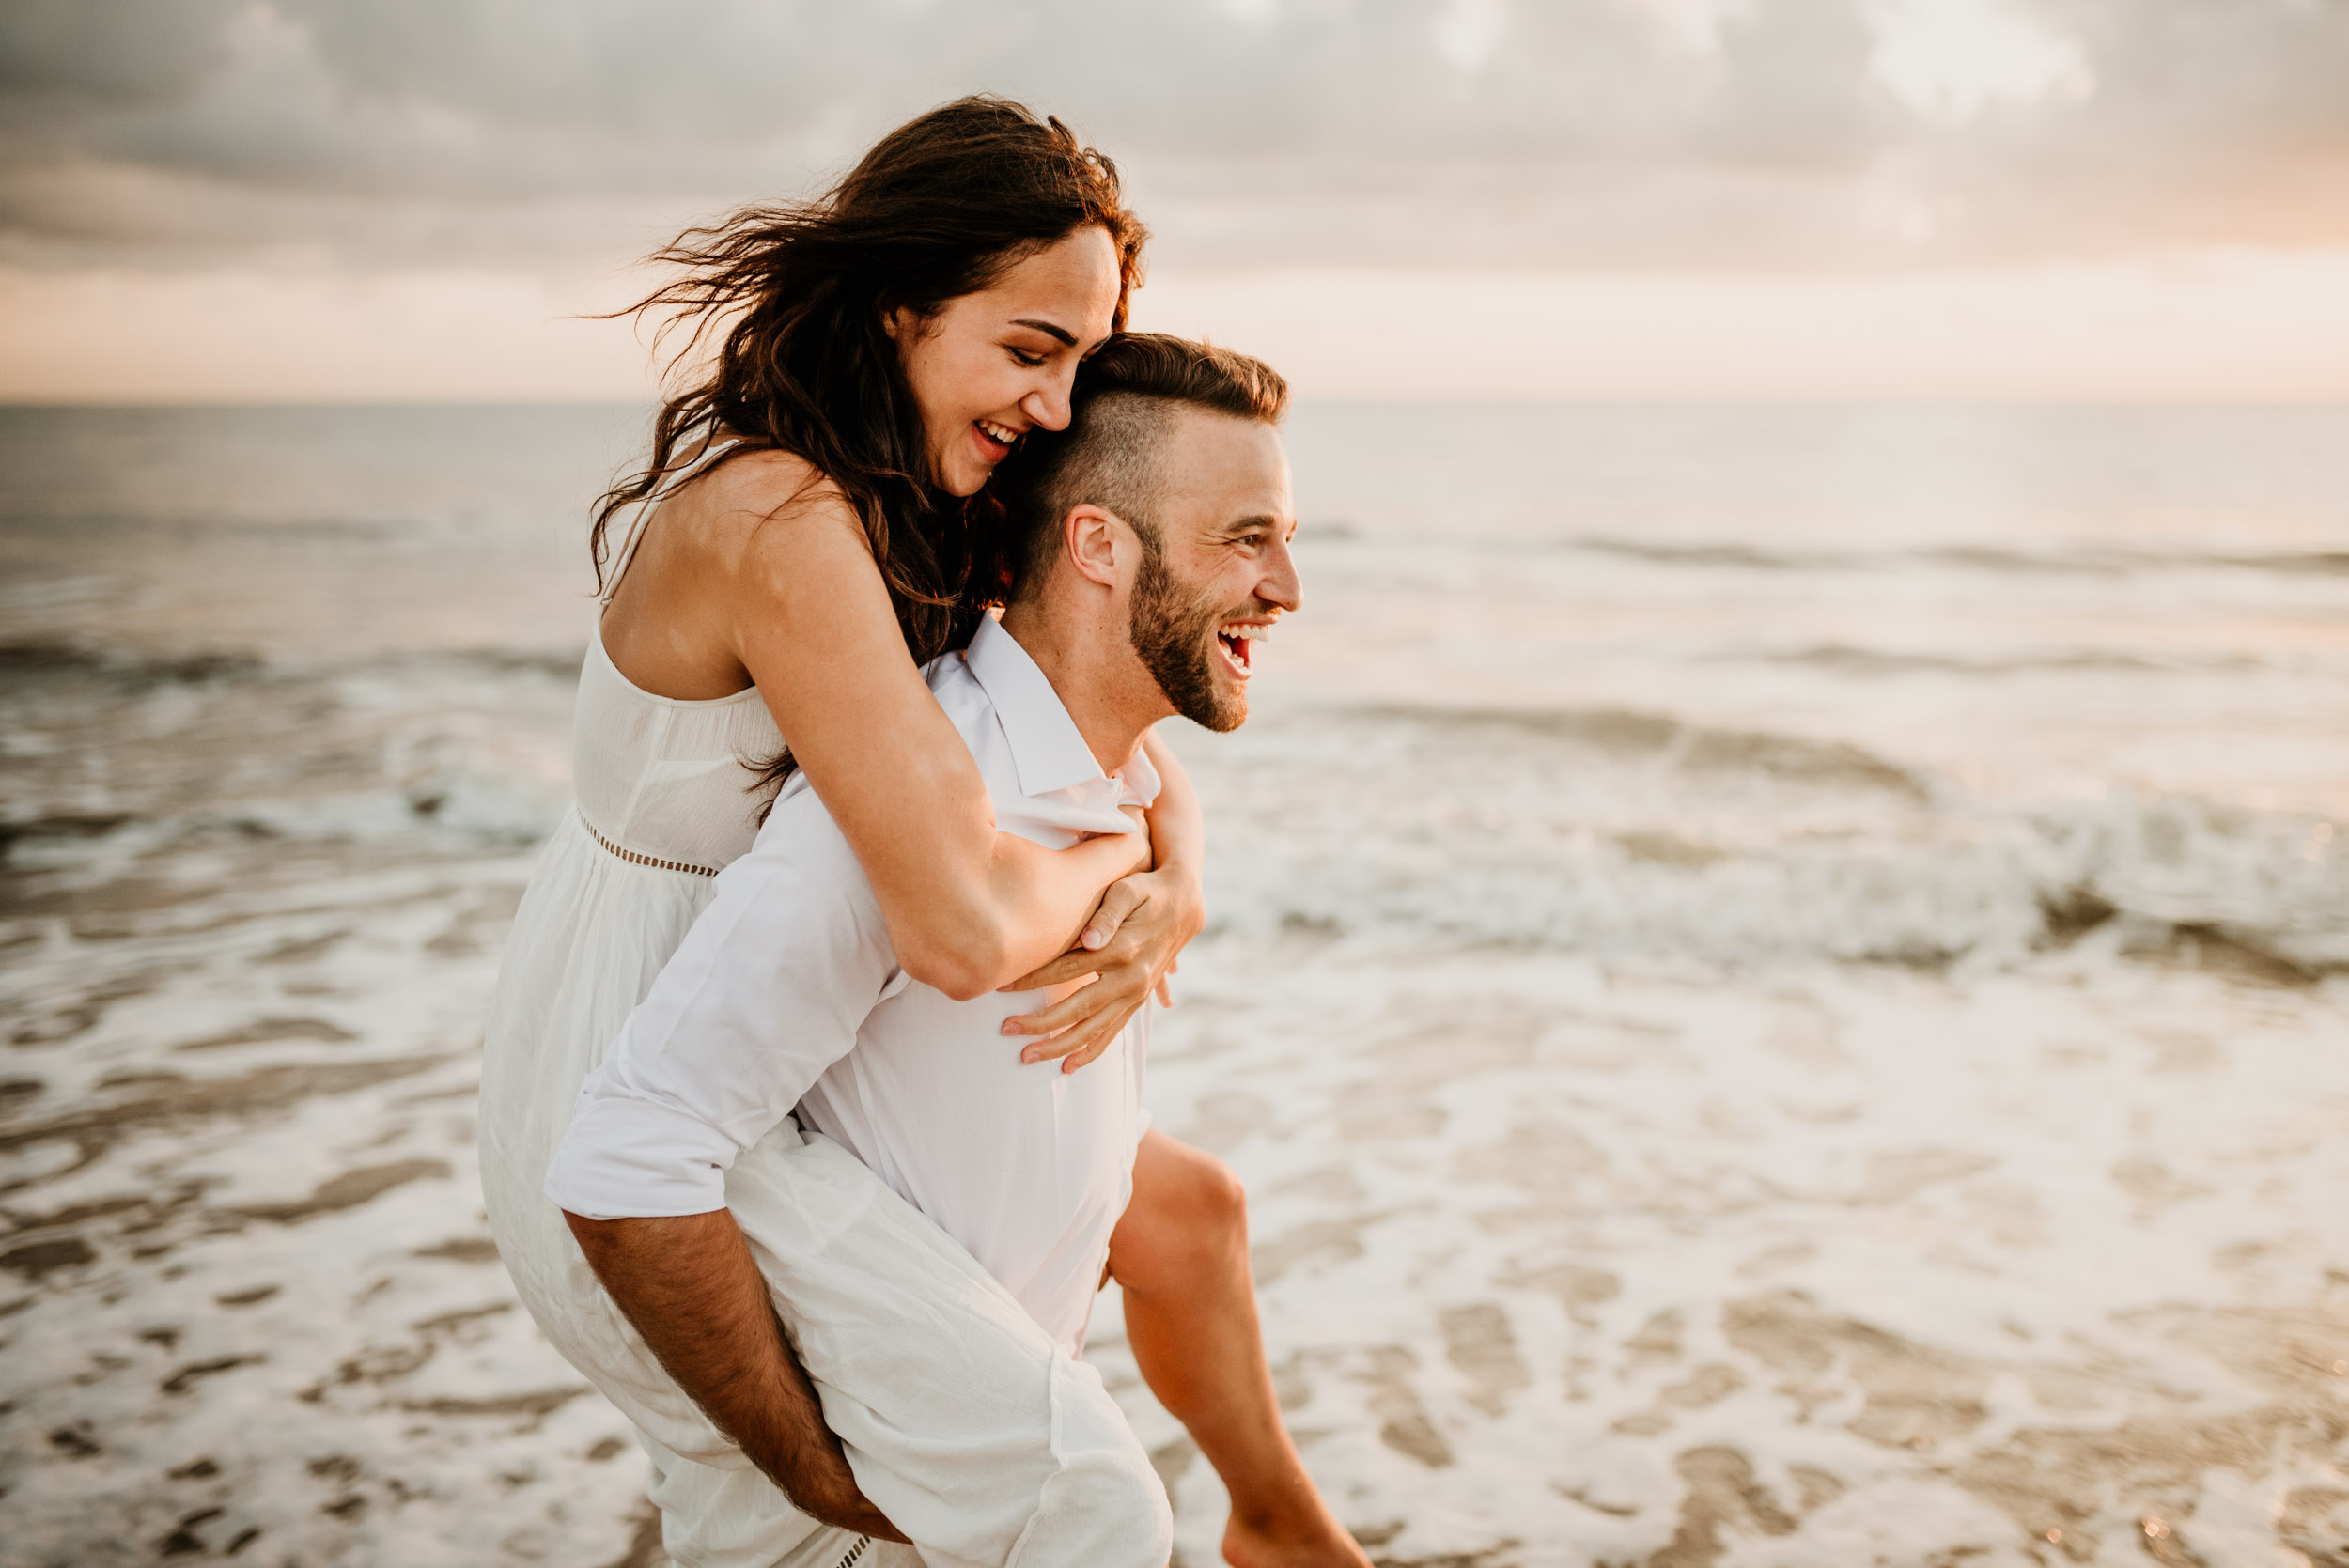 The Raw Photographer - Cairns Wedding Photographer - Engaged Engagement - Beach location - Candid Photography Queensland-18.jpg